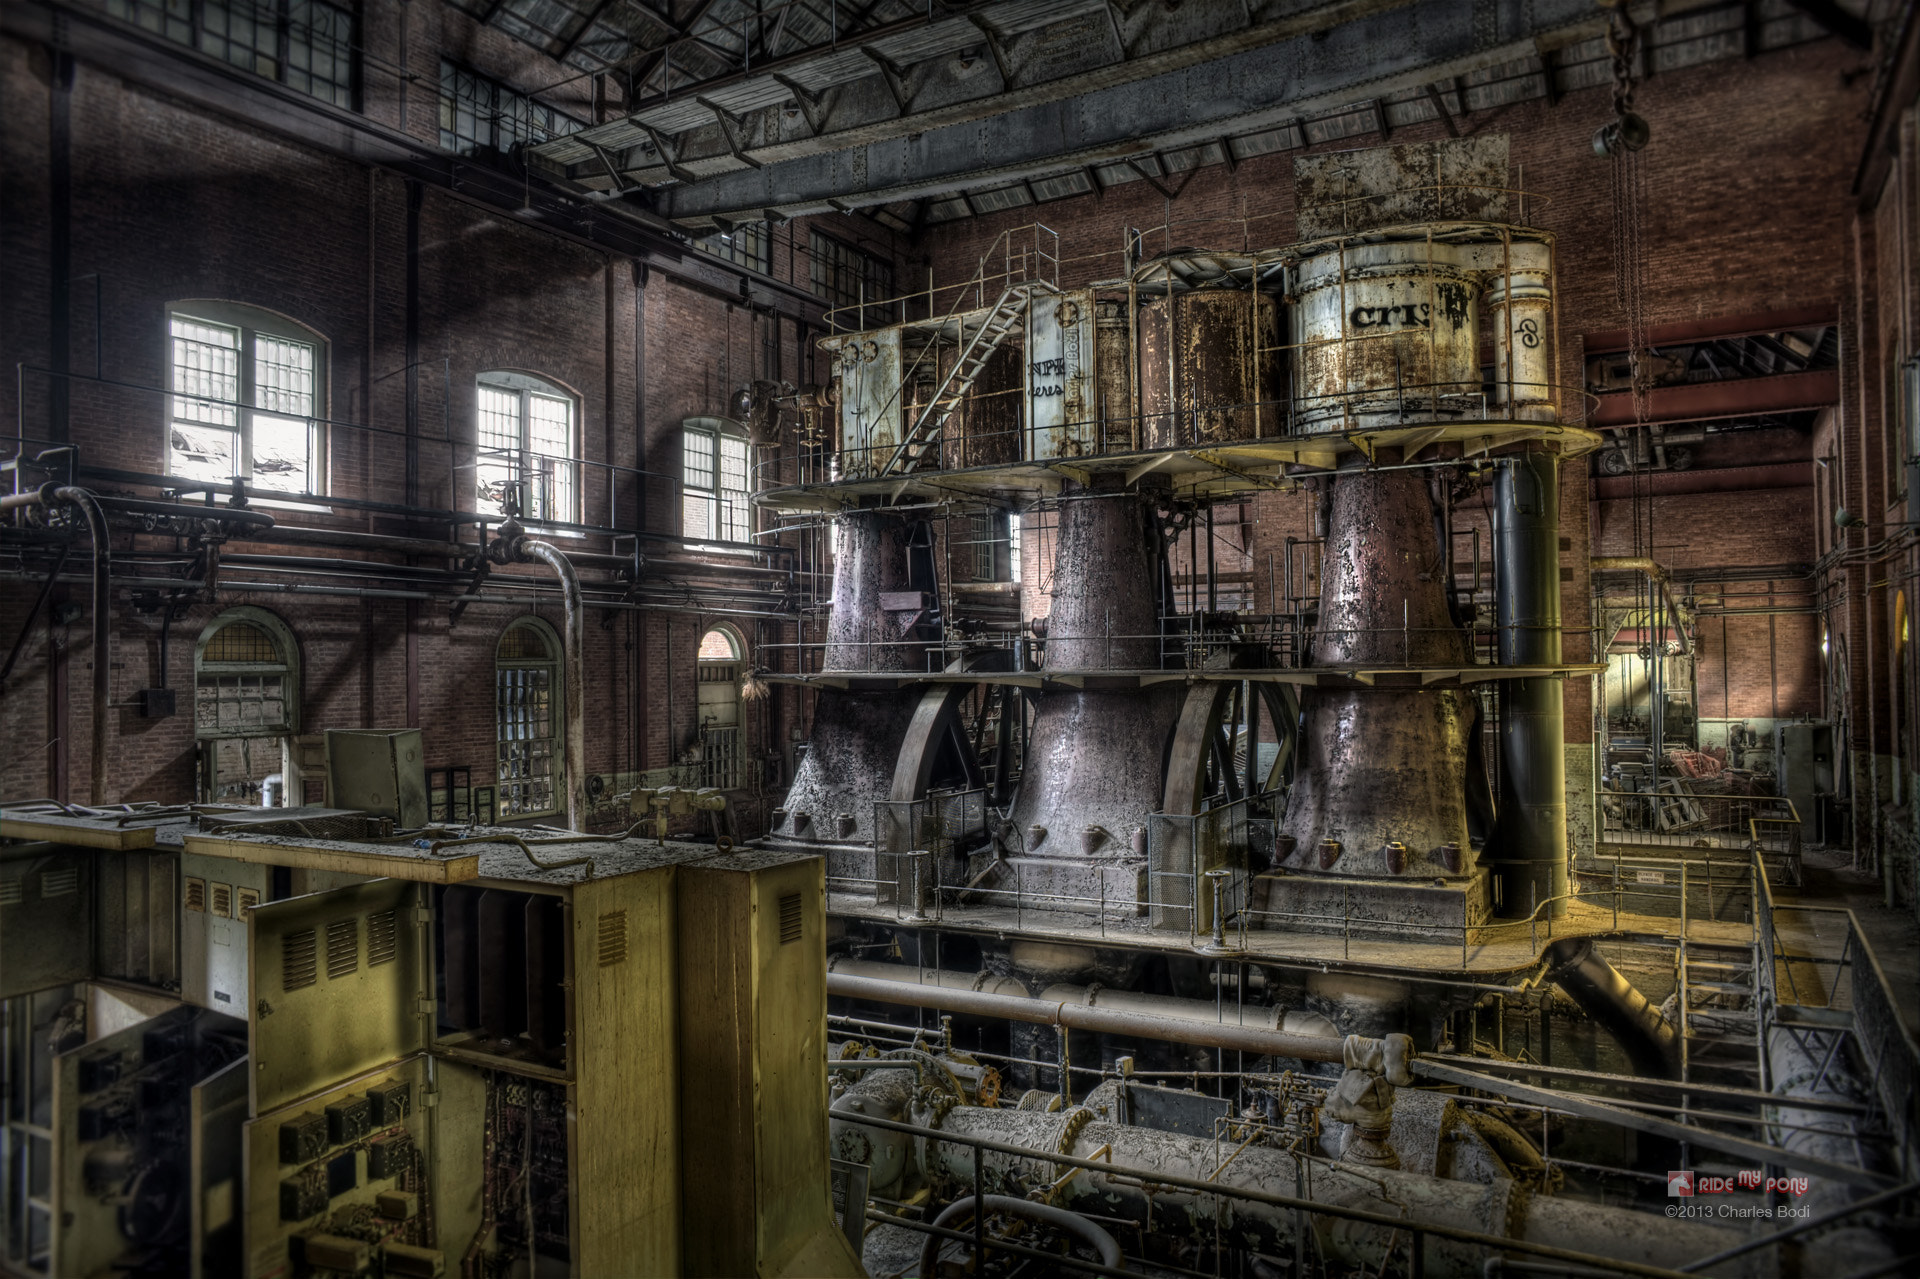 Photograph Pump by Charles Bodi on 500px